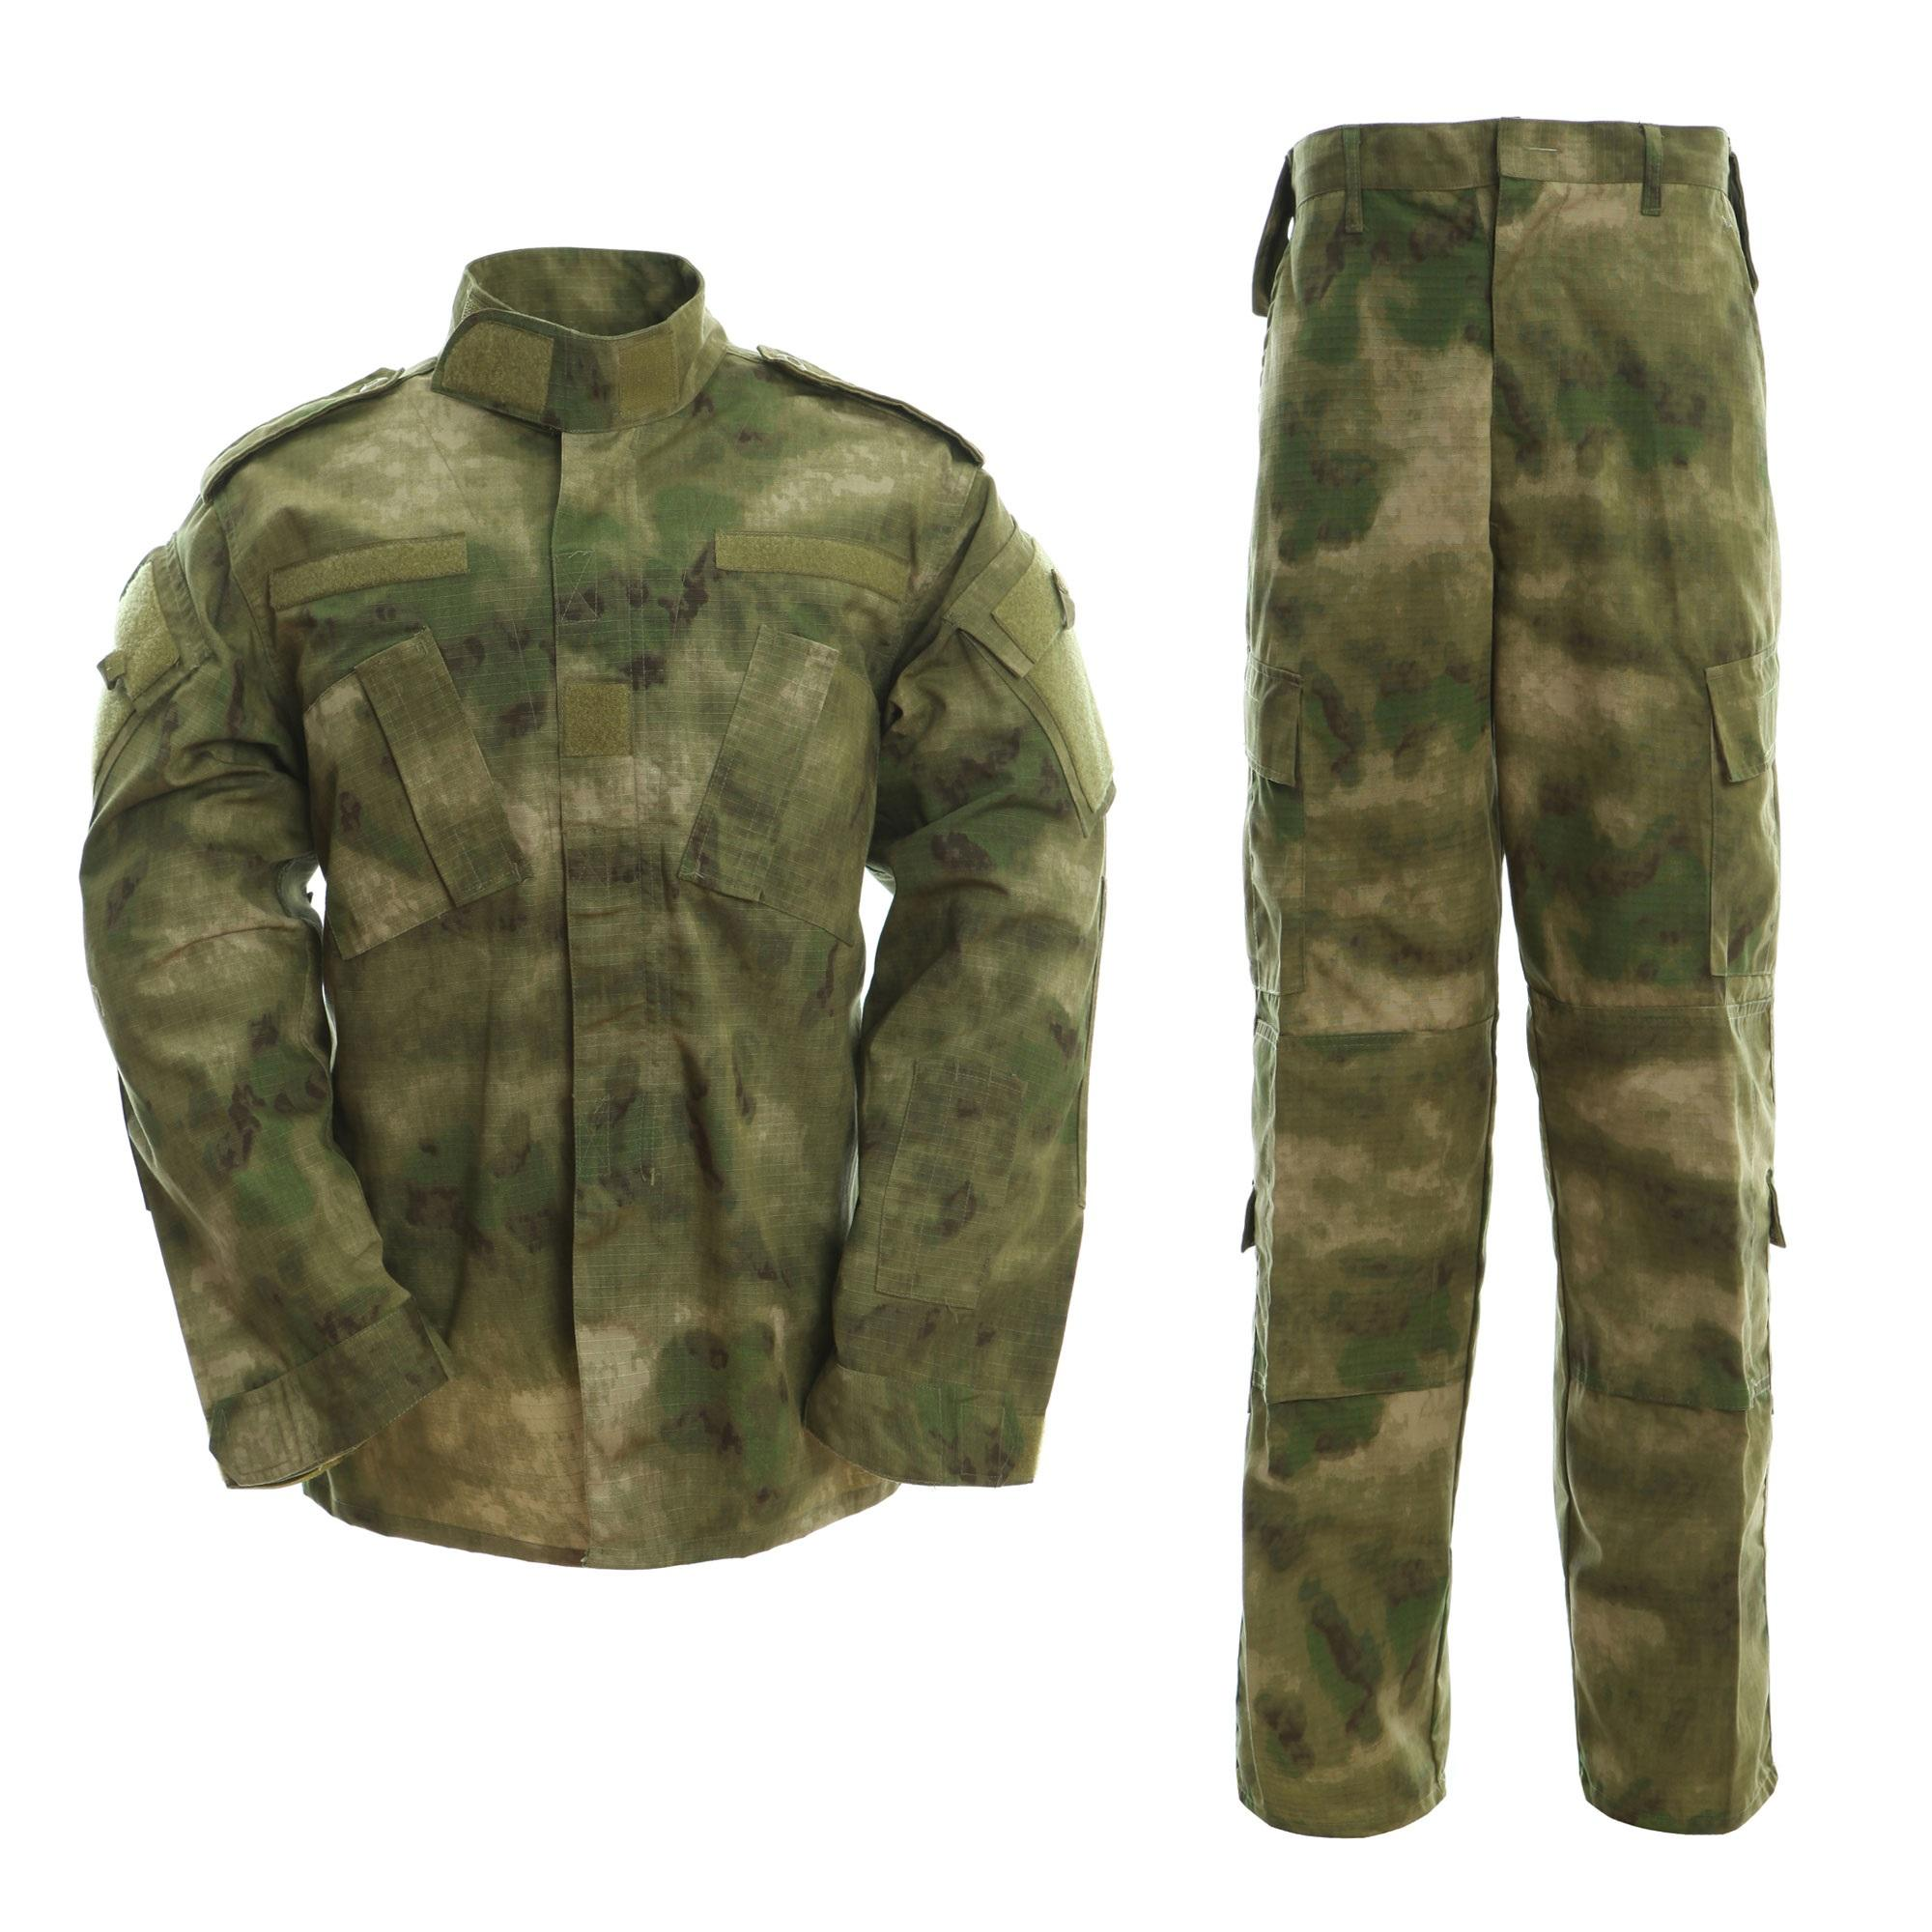 Loveslf A-TACS-FG high quality military uniform army camouflage training clothing